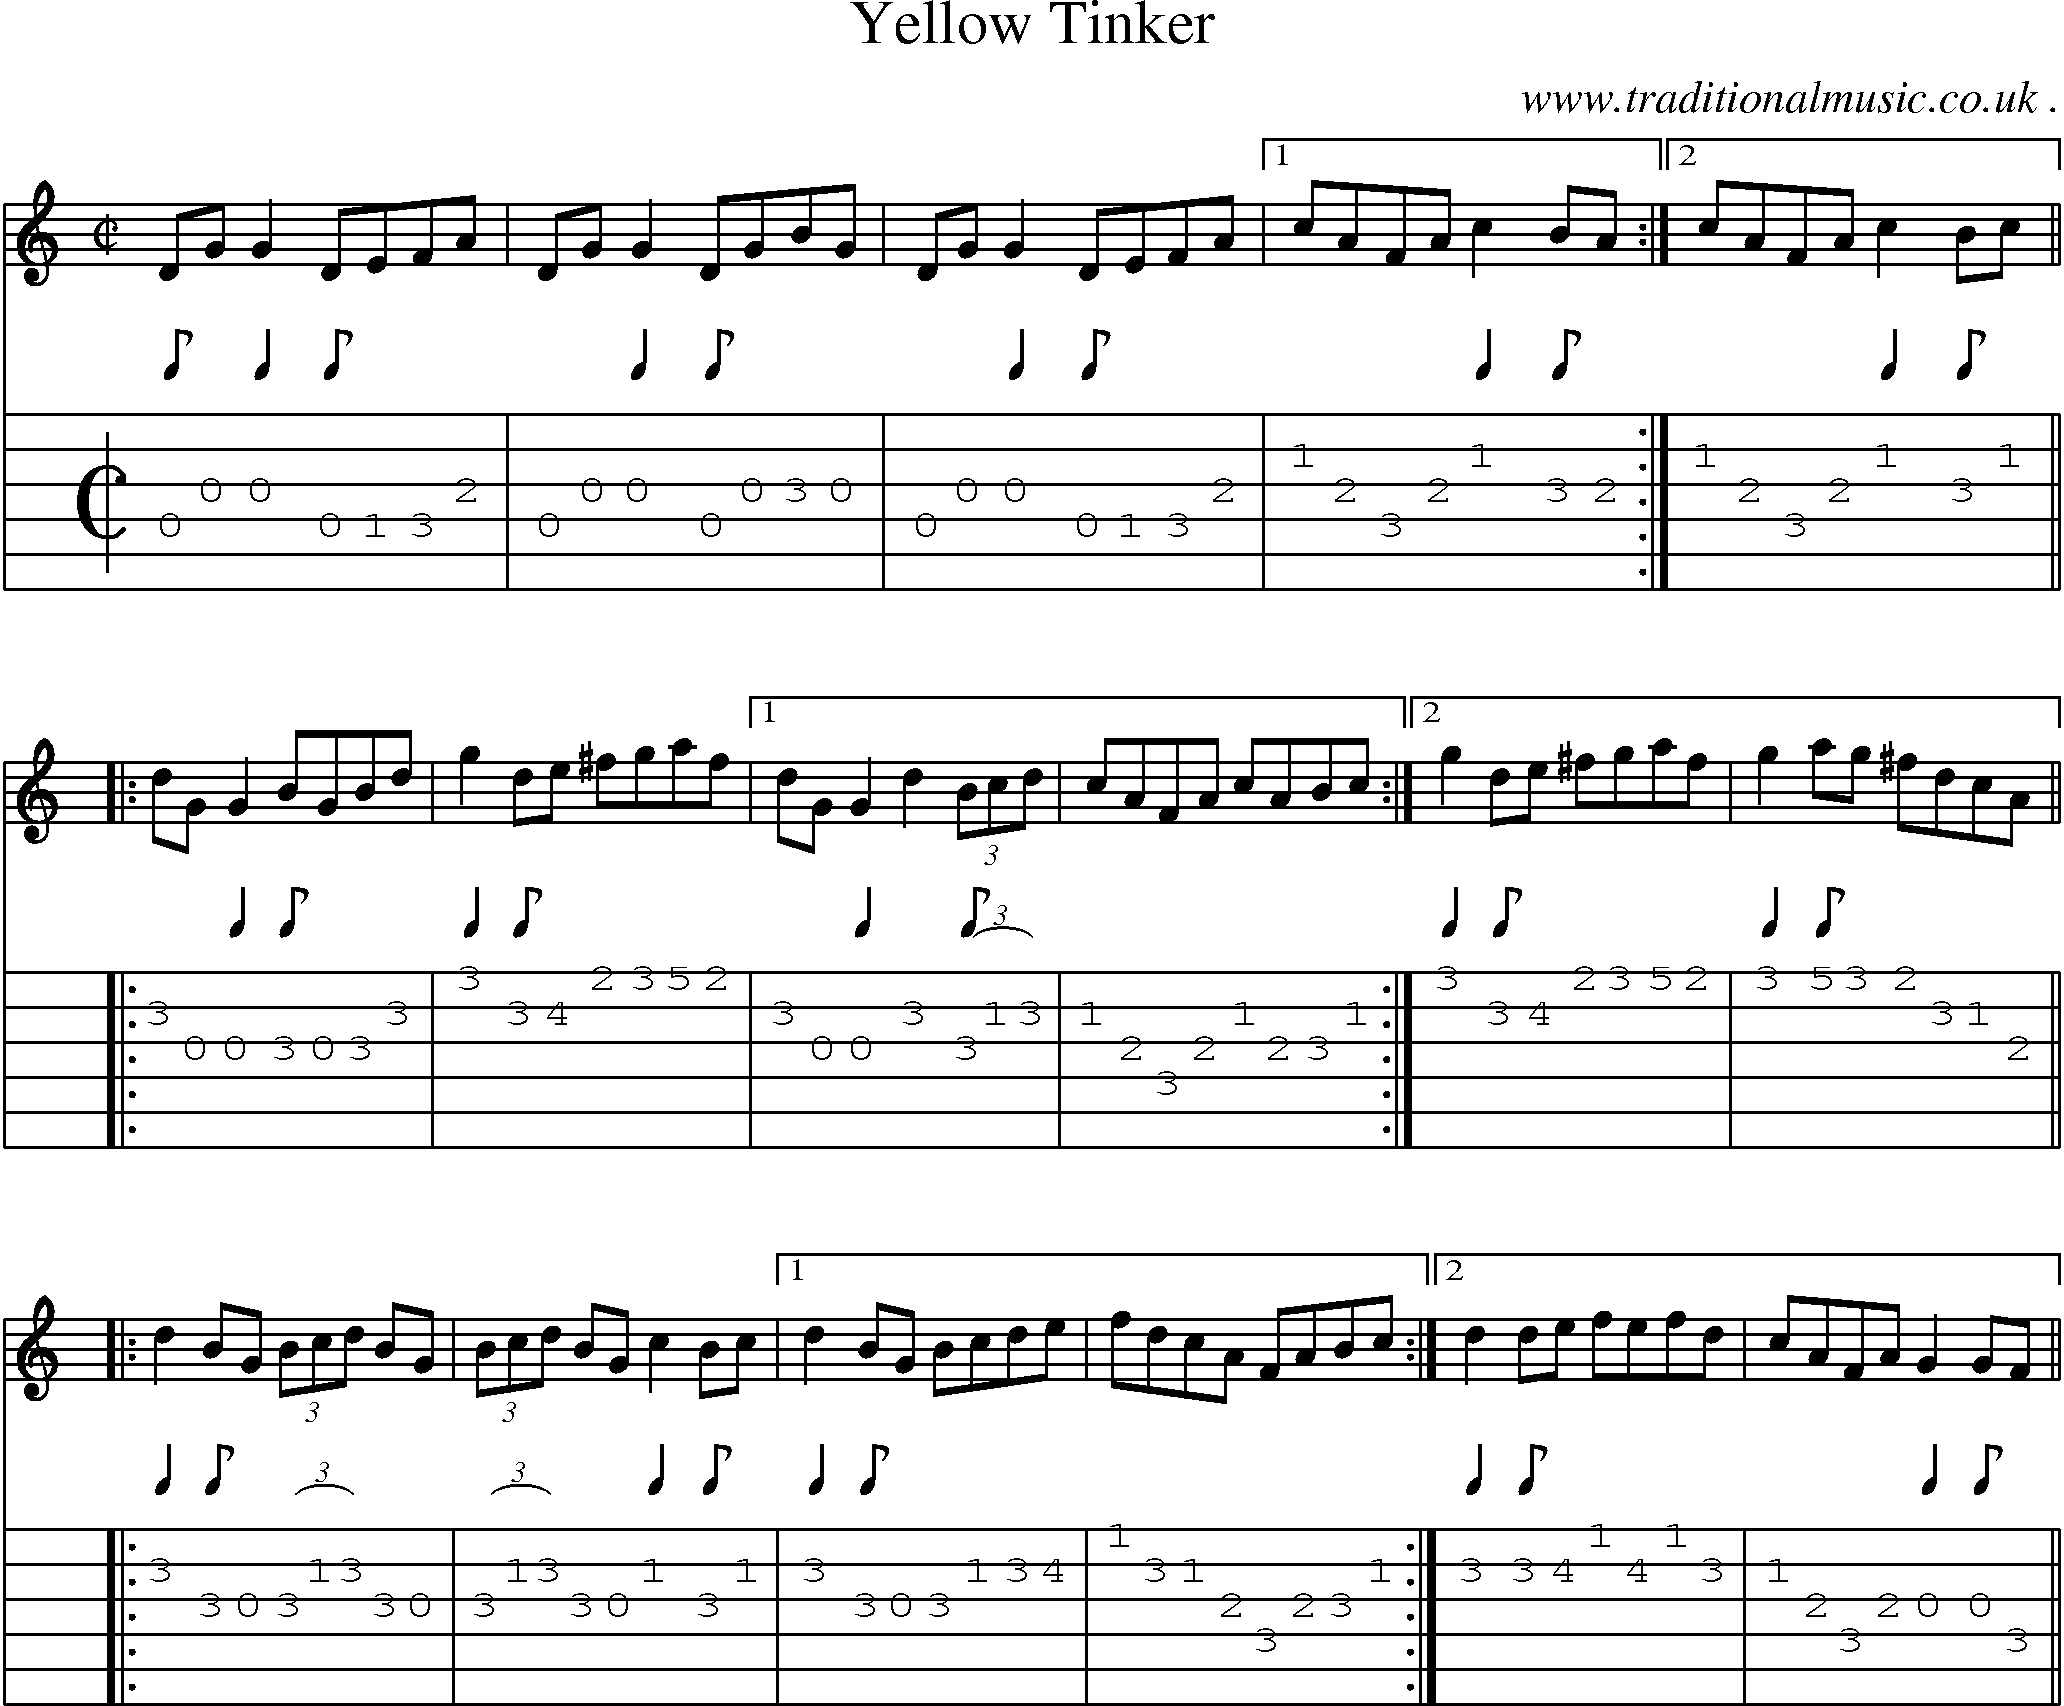 Folk and Traditional Music, Sheet-Music, Guitar tab, mp3 audio, midi and PDF for: Yellow Tinker